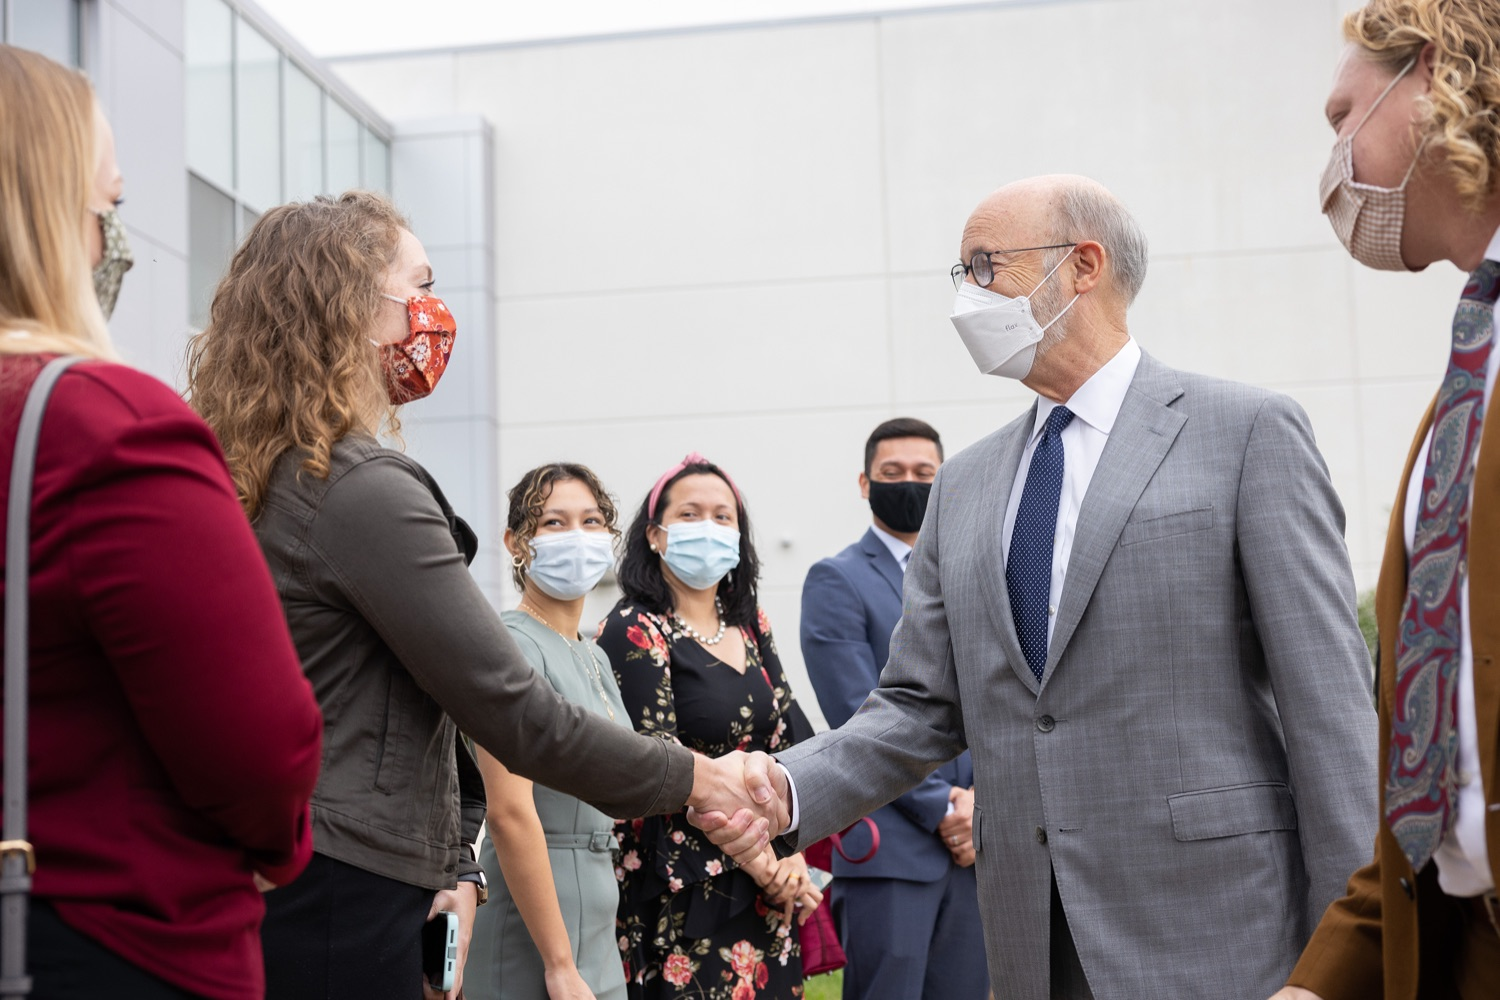 """<a href=""""https://filesource.wostreaming.net/commonwealthofpa/photo/20138_gov_BioTechniqueRibbon_dz_020.JPG"""" target=""""_blank"""">⇣Download Photo<br></a>Pennsylvania Governor Tom Wolf greeting BioTechnique employees.Governor Tom Wolf today joined BioTechnique CEO John Clapham, the Department of Community and Economic Developments (DCED) Governors Action Team (GAT), York County Economic Alliance CEO Kevin Schreiber, and local officials at the ribbon cutting ceremony for BioTechniques new pharmaceutical manufacturing facility in York County.   OCTOBER 12, 2021 - YORK, PA"""